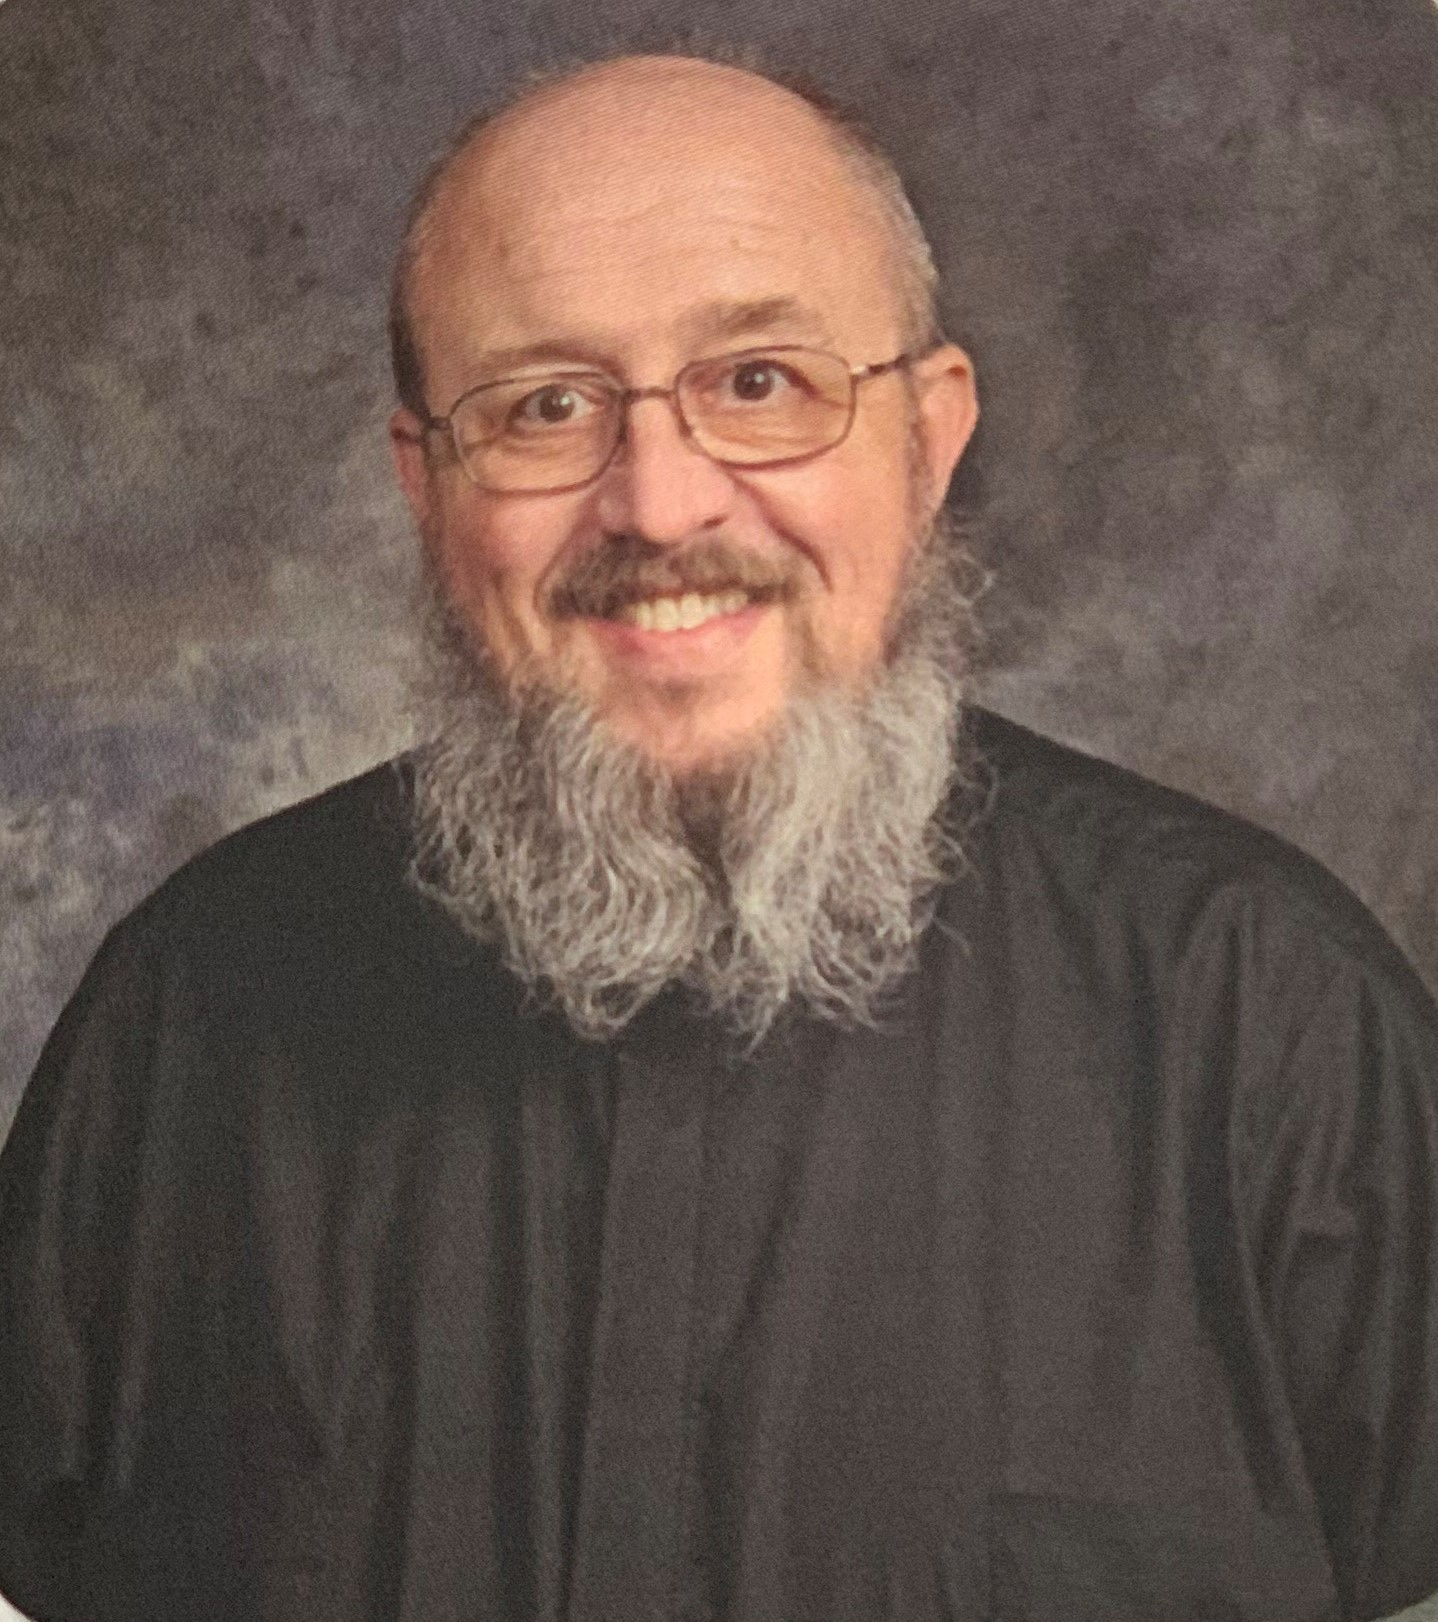 Father Greg OlszewskiParochial Vicar - Fr. Greg was ordained in 2006, and has served at St. Ambrose (Brunswick), Mary Queen of the Apostles (Brook Park), Ss. Peter and Paul (Garfield Heights), and Holy Family (Parma). He joined the staff in 2017.